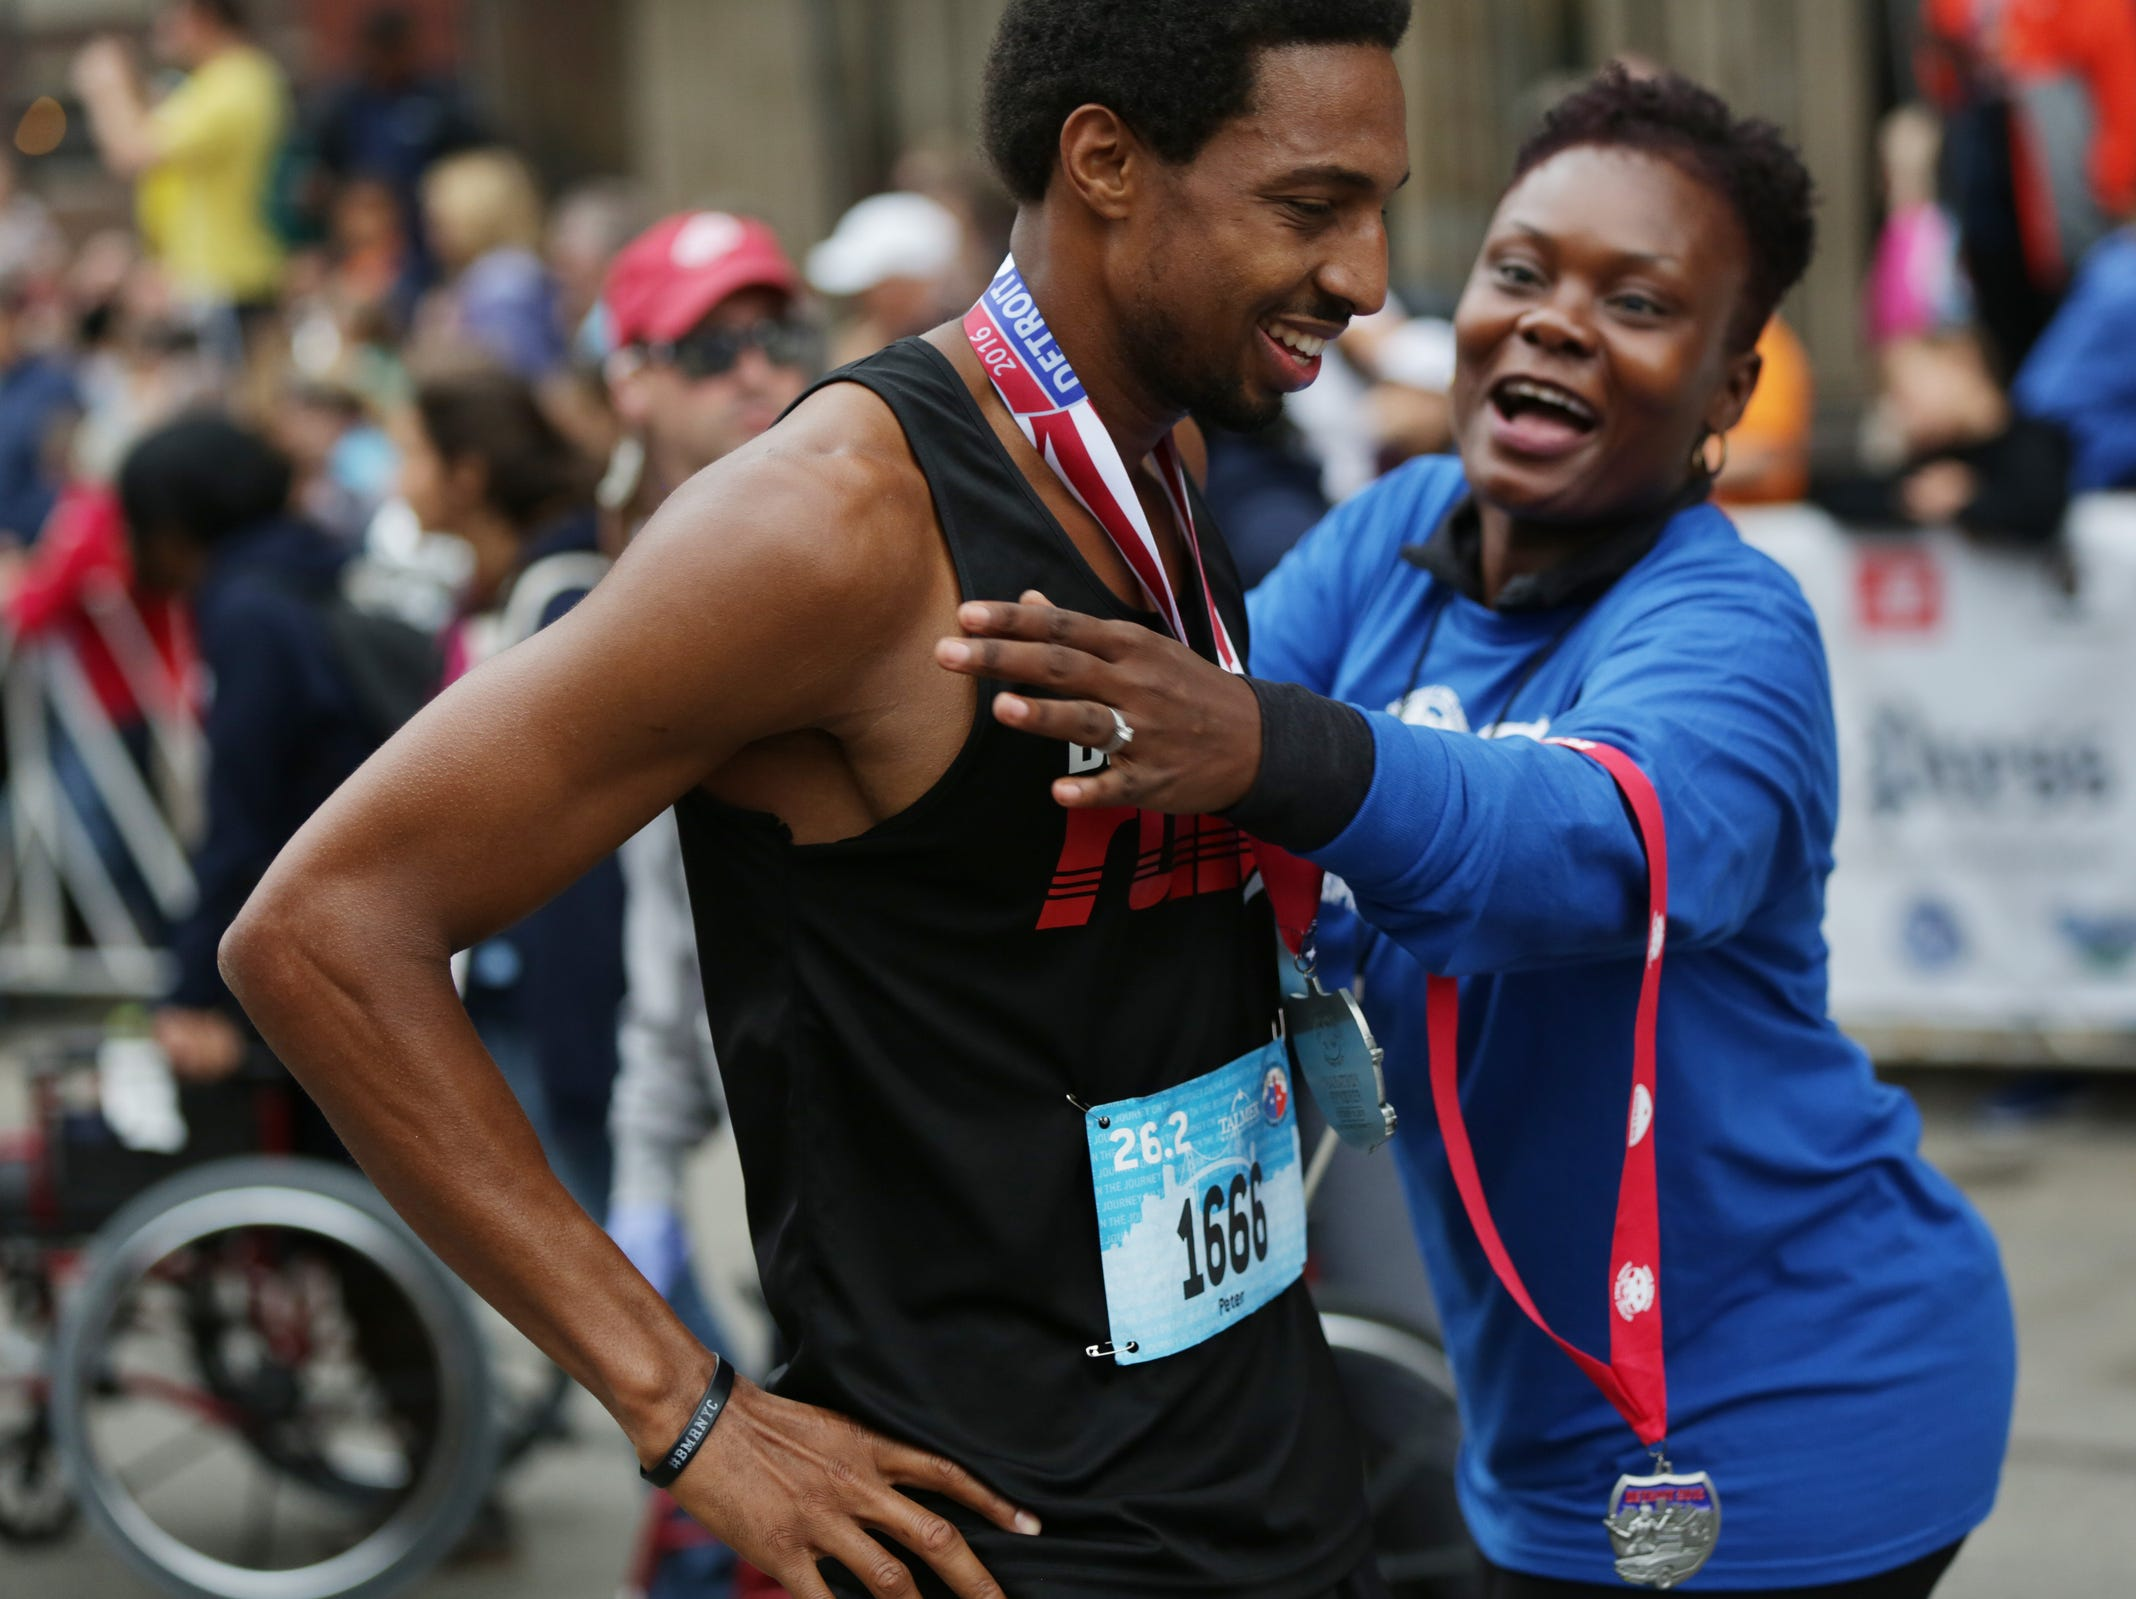 Peter Campbell of Brooklyn gets a medal after crossing the finish line during the 39th Annual Detroit Free Press/Talmer Bank Marathon in Detroit on Sunday, Oct. 16, 2016.Romain Blanquart/Detroit Free Press